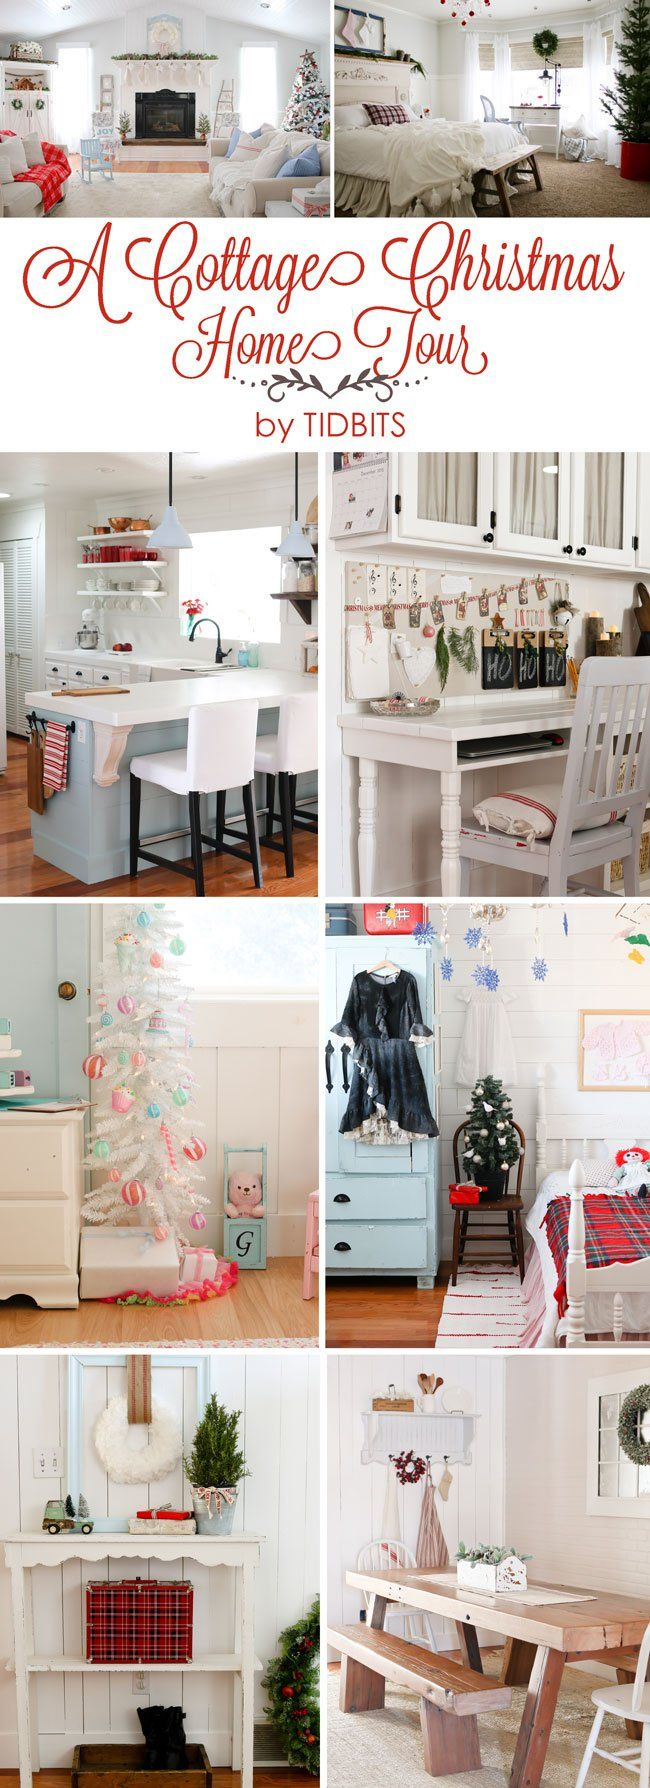 best 25 cottage christmas decorating ideas on pinterest cottage a cottage christmas home tour